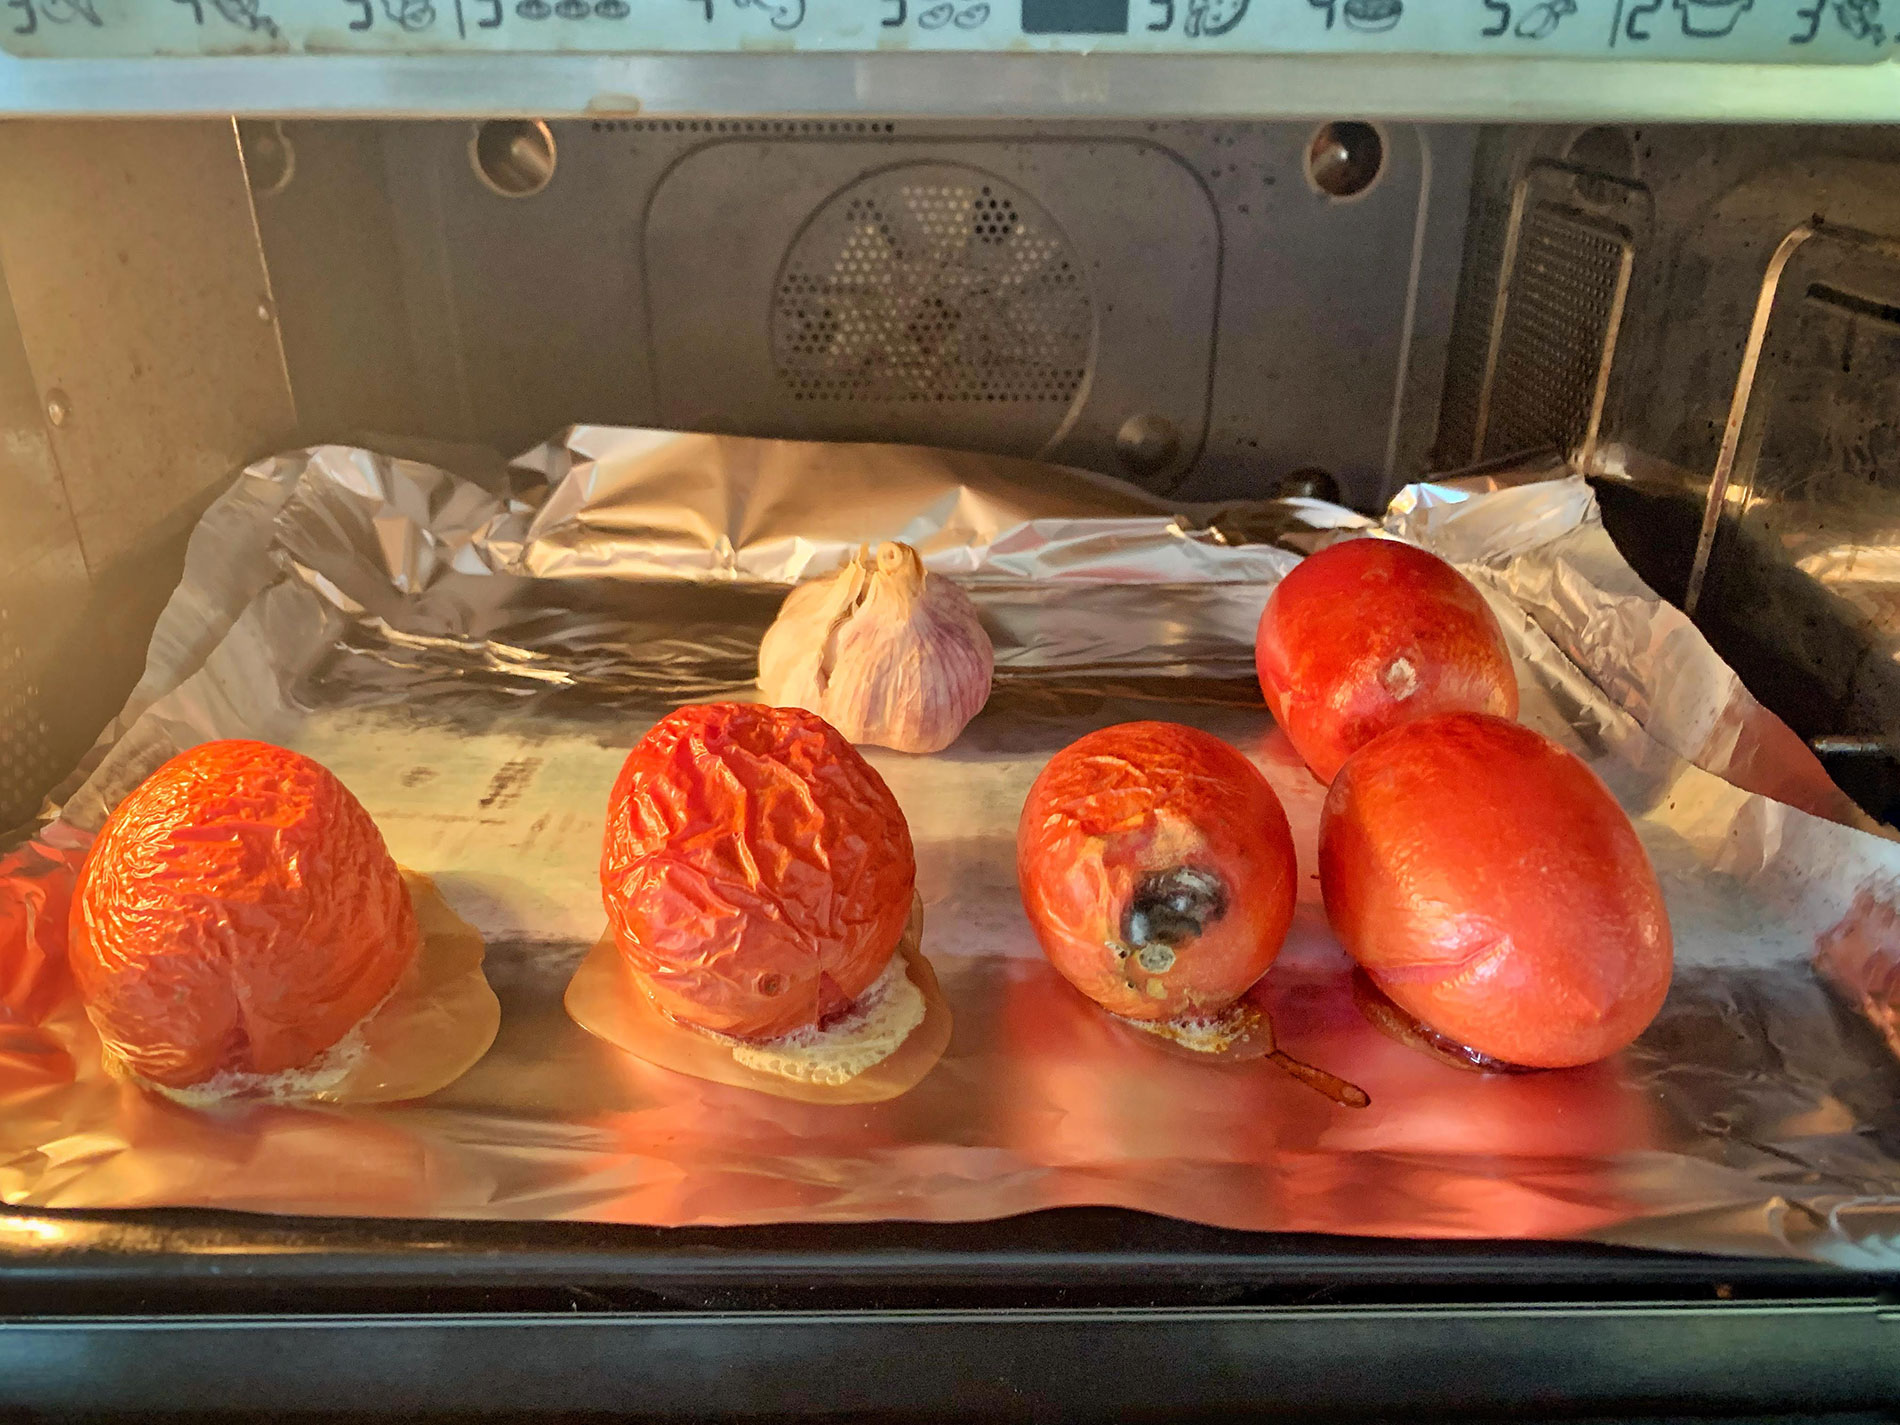 Roasted tomatos and garlic for romesco sauce, CÚRATE Trips